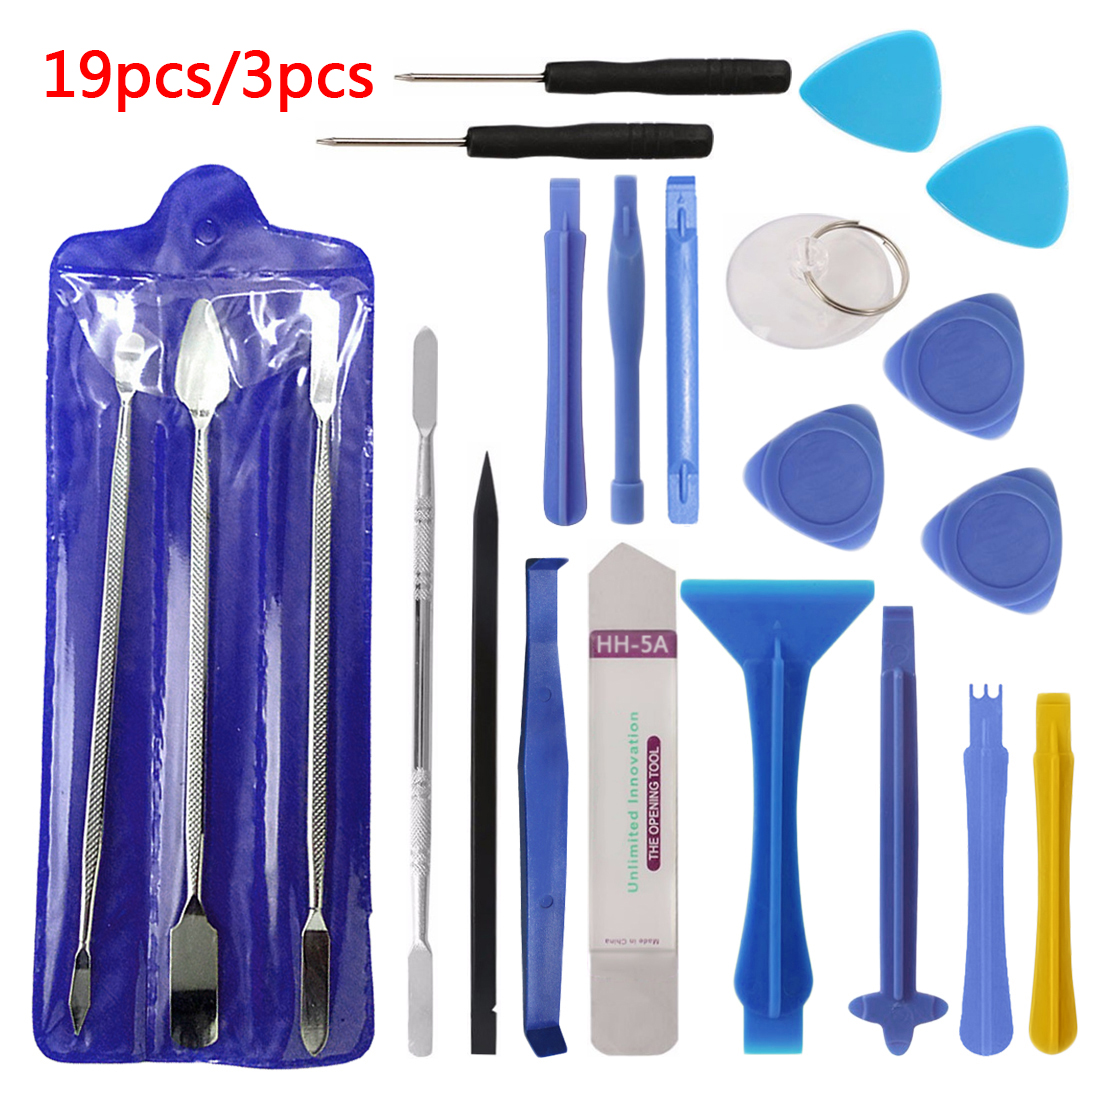 Hot Disassemble Tools 3pcs/19pcs Repair Tool Kit Opening Tool Metal Pry Bar Smartphone Screen Hand Tool Set For IPhone Tablet PC